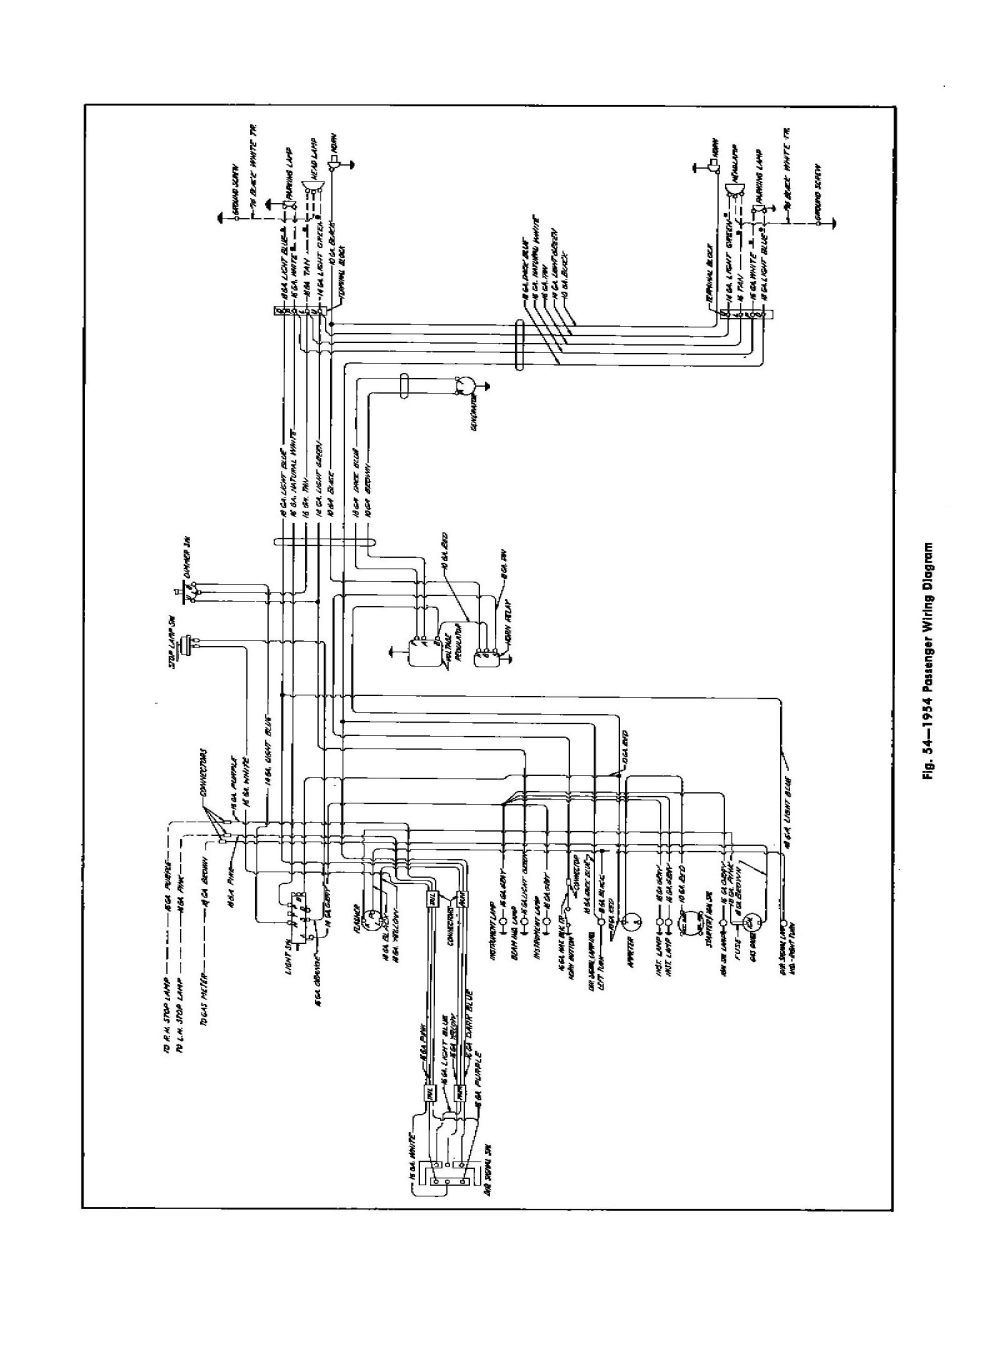 medium resolution of chevy wiring diagrams 1997 corvette wiring diagram 1954 corvette wiring diagram